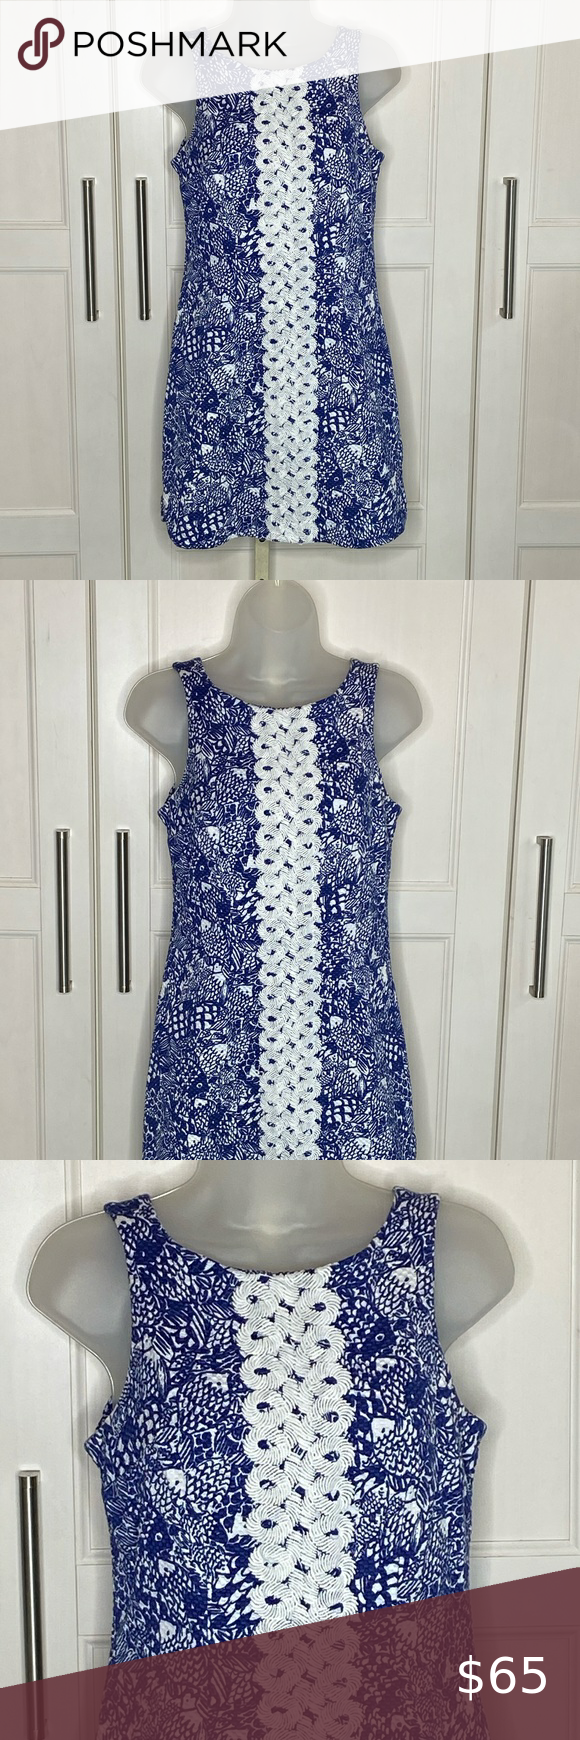 Lilly Pulitzer For Target Blue Tank Dress Sz 6 Tank Dresses Outfit Clothes Design Fashion [ 1740 x 580 Pixel ]